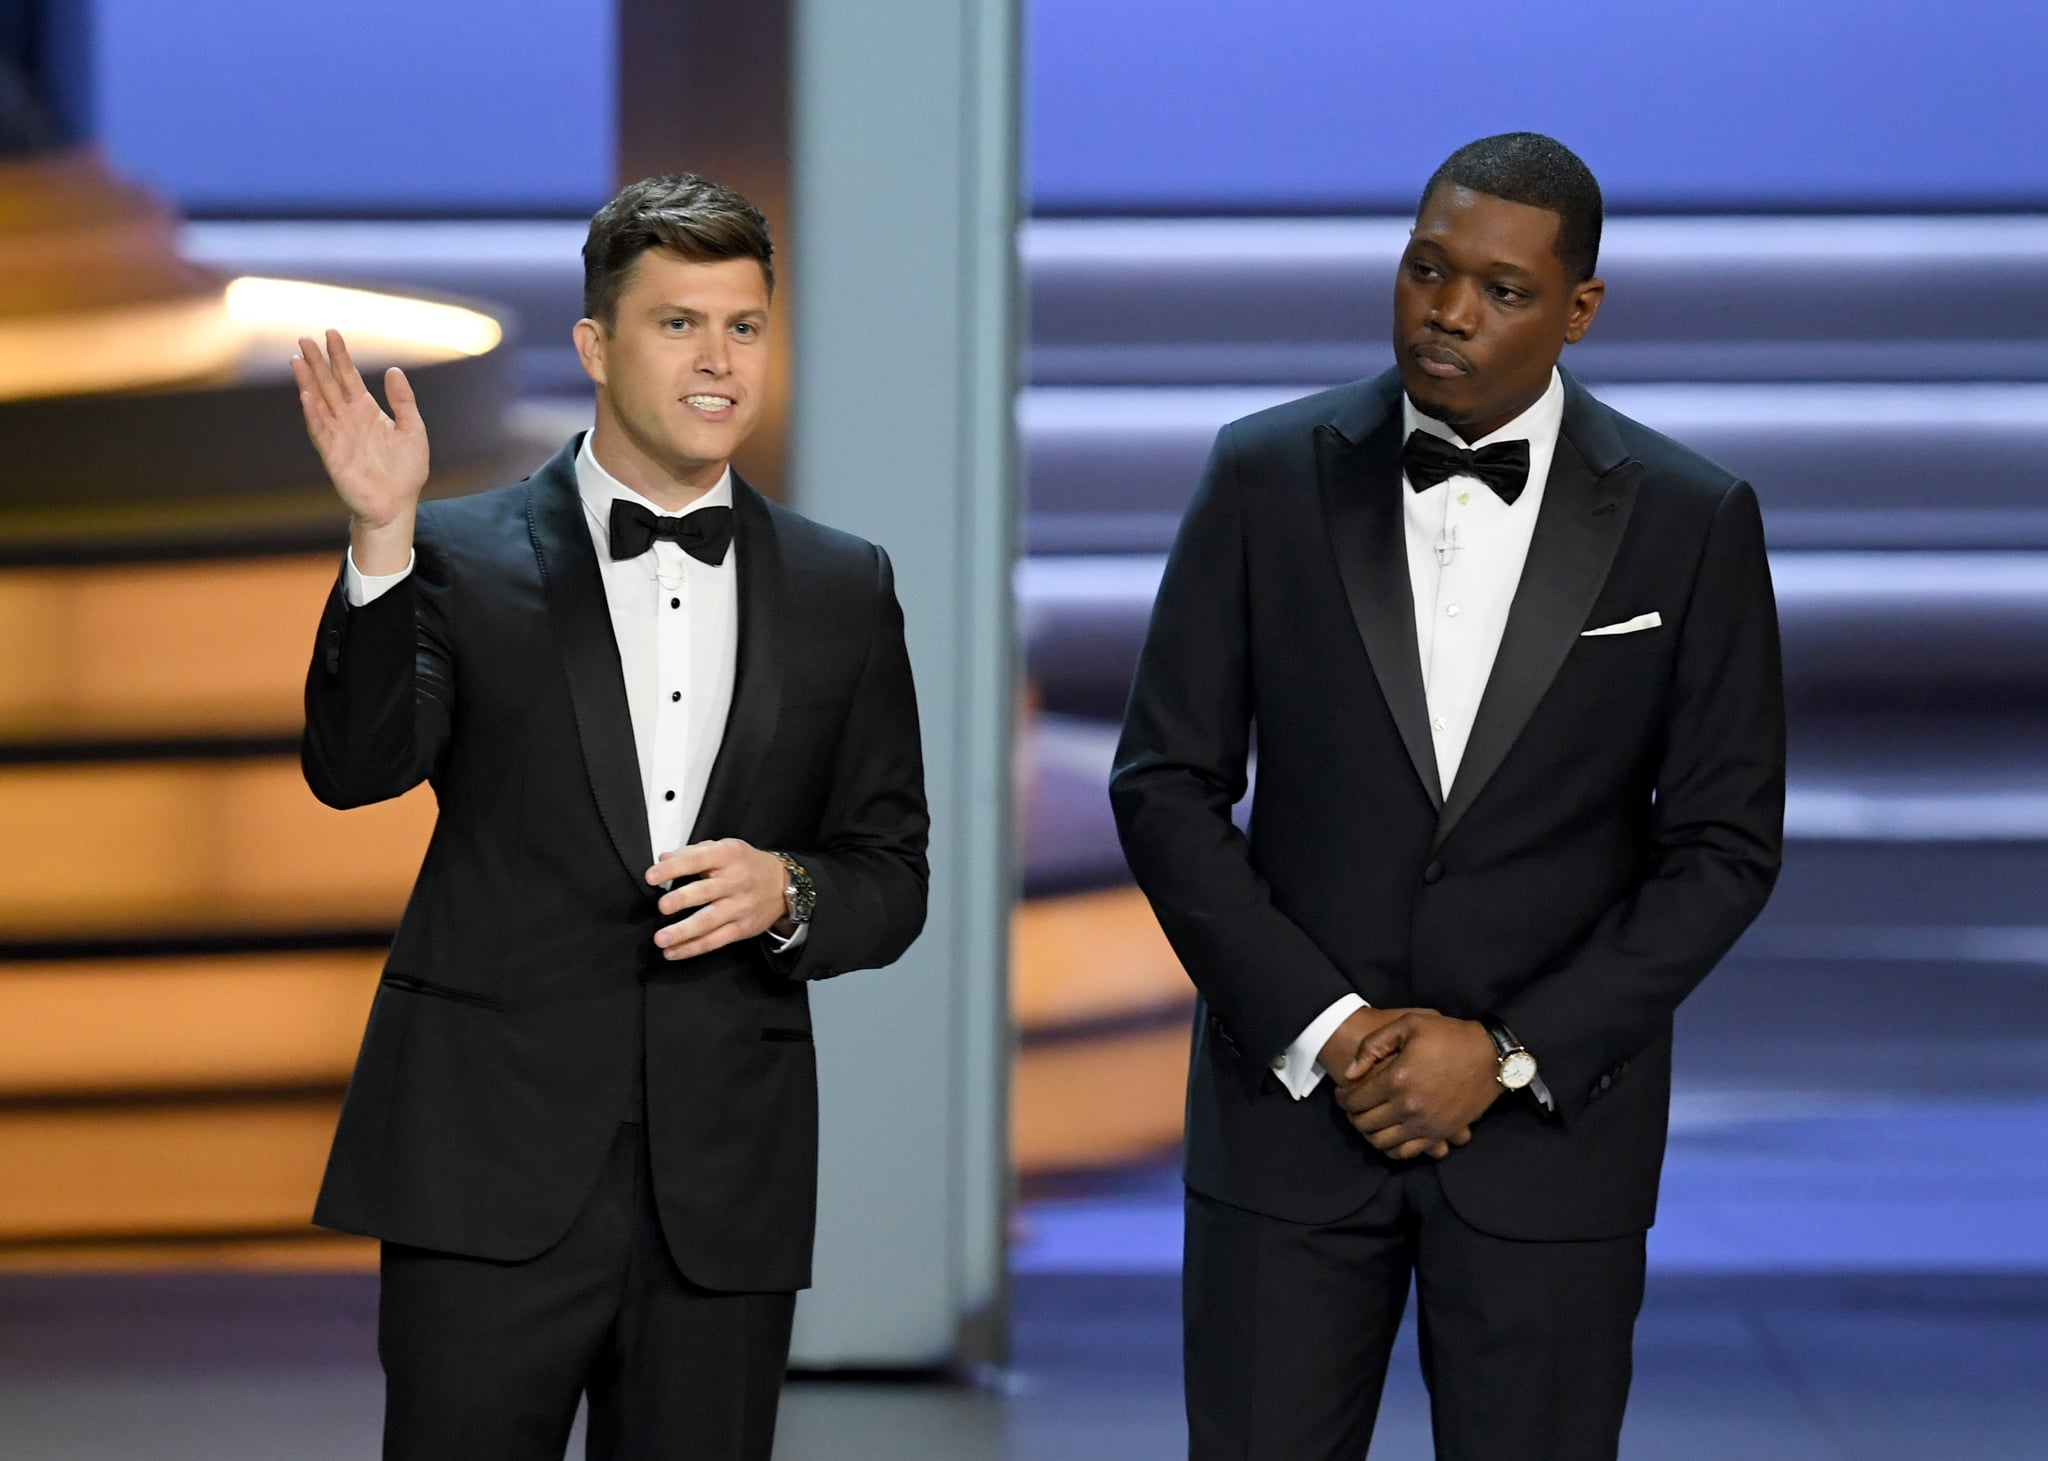 LOS ANGELES, CA - SEPTEMBER 17:  Colin Jost (L) and Michael Che speak onstage during the 70th Emmy Awards at Microsoft Theatre on September 17, 2018 in Los Angeles, California.  (Photo by Kevin Winter/Getty Images)